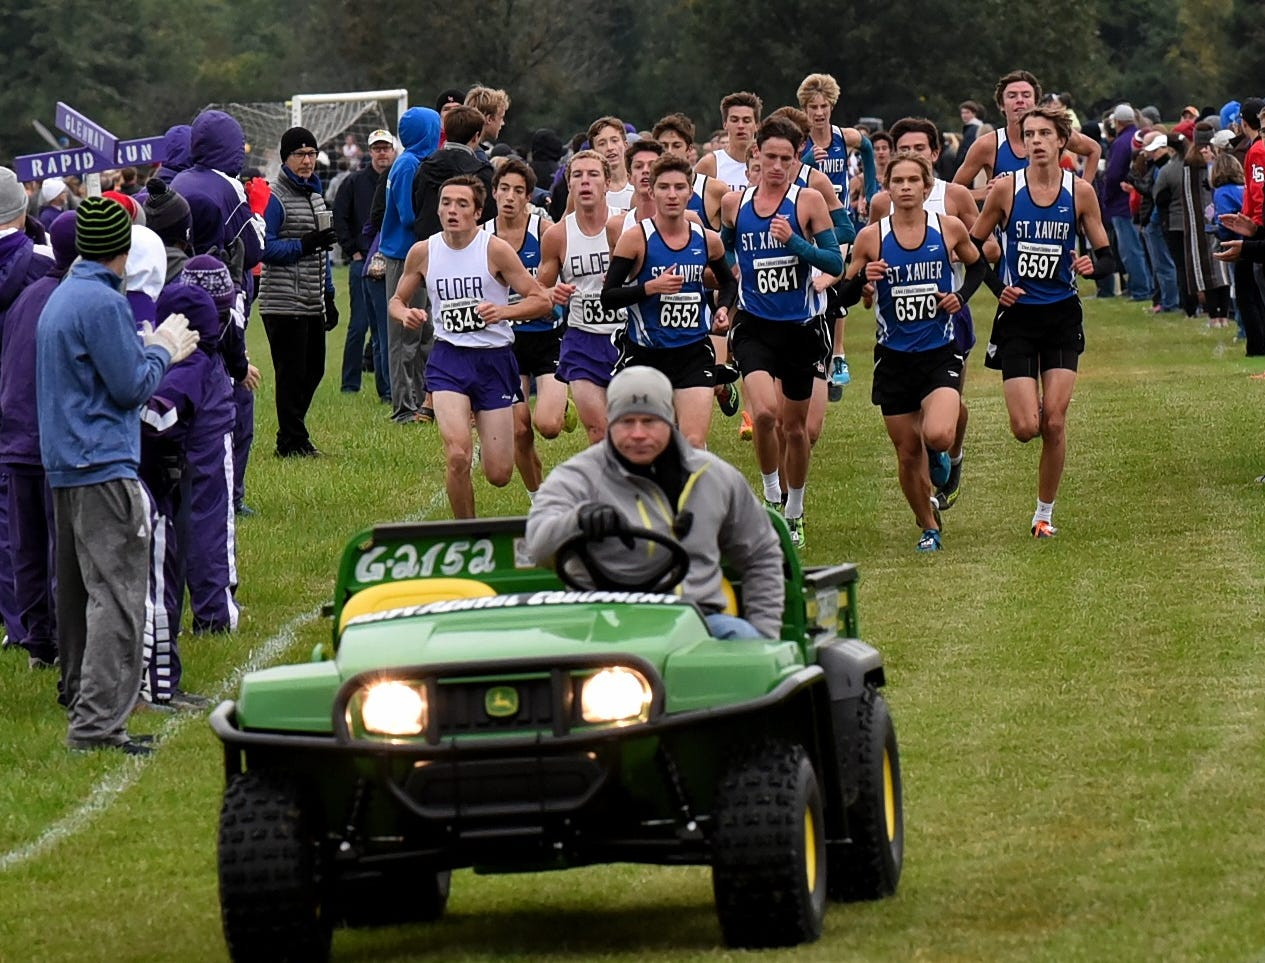 The lead vehicle guides the GCL cross country runners at the 2018 GCL/GGCL Cross Country Championships, October 13, 2018.